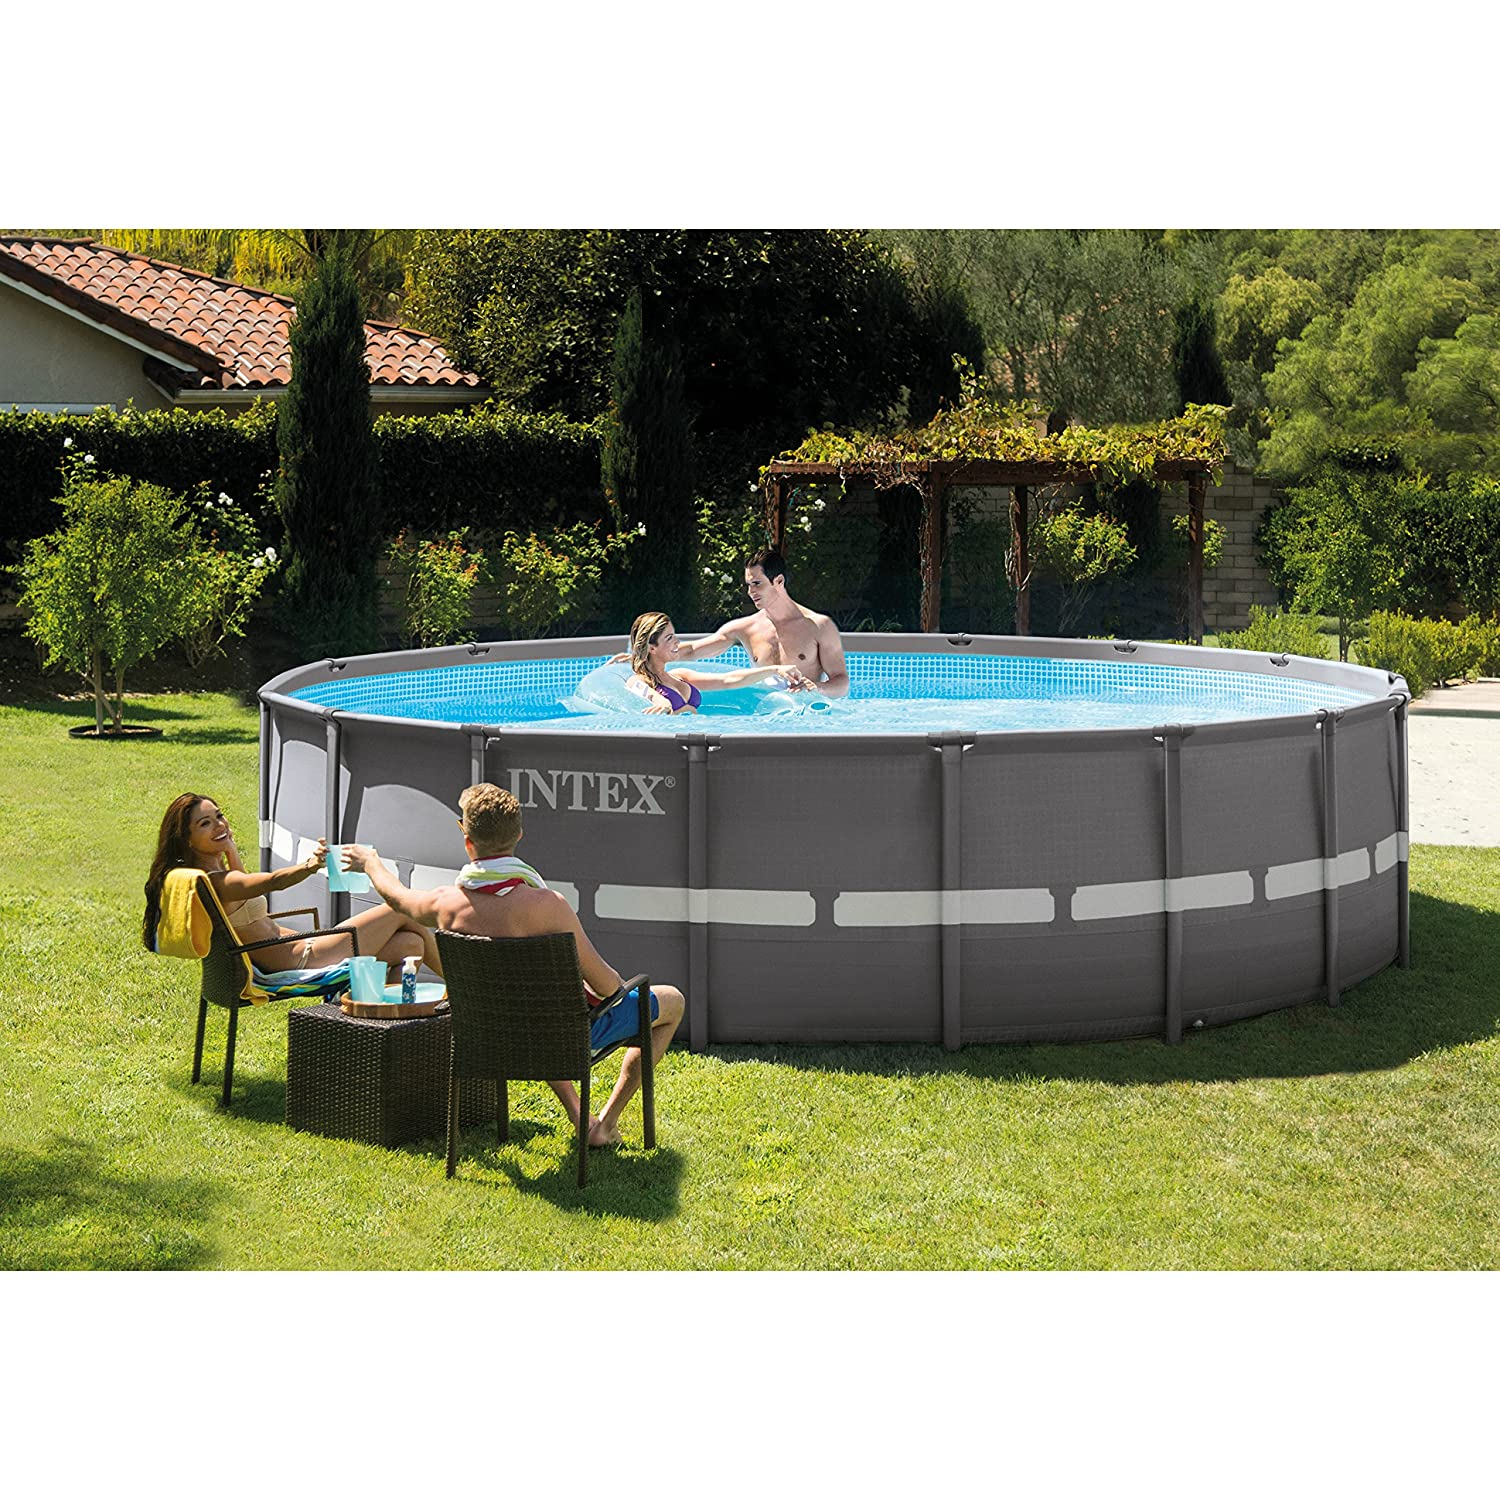 Amazon.com : Intex 16ft X 48in Ultra Frame Pool Set with Sand Filter ...